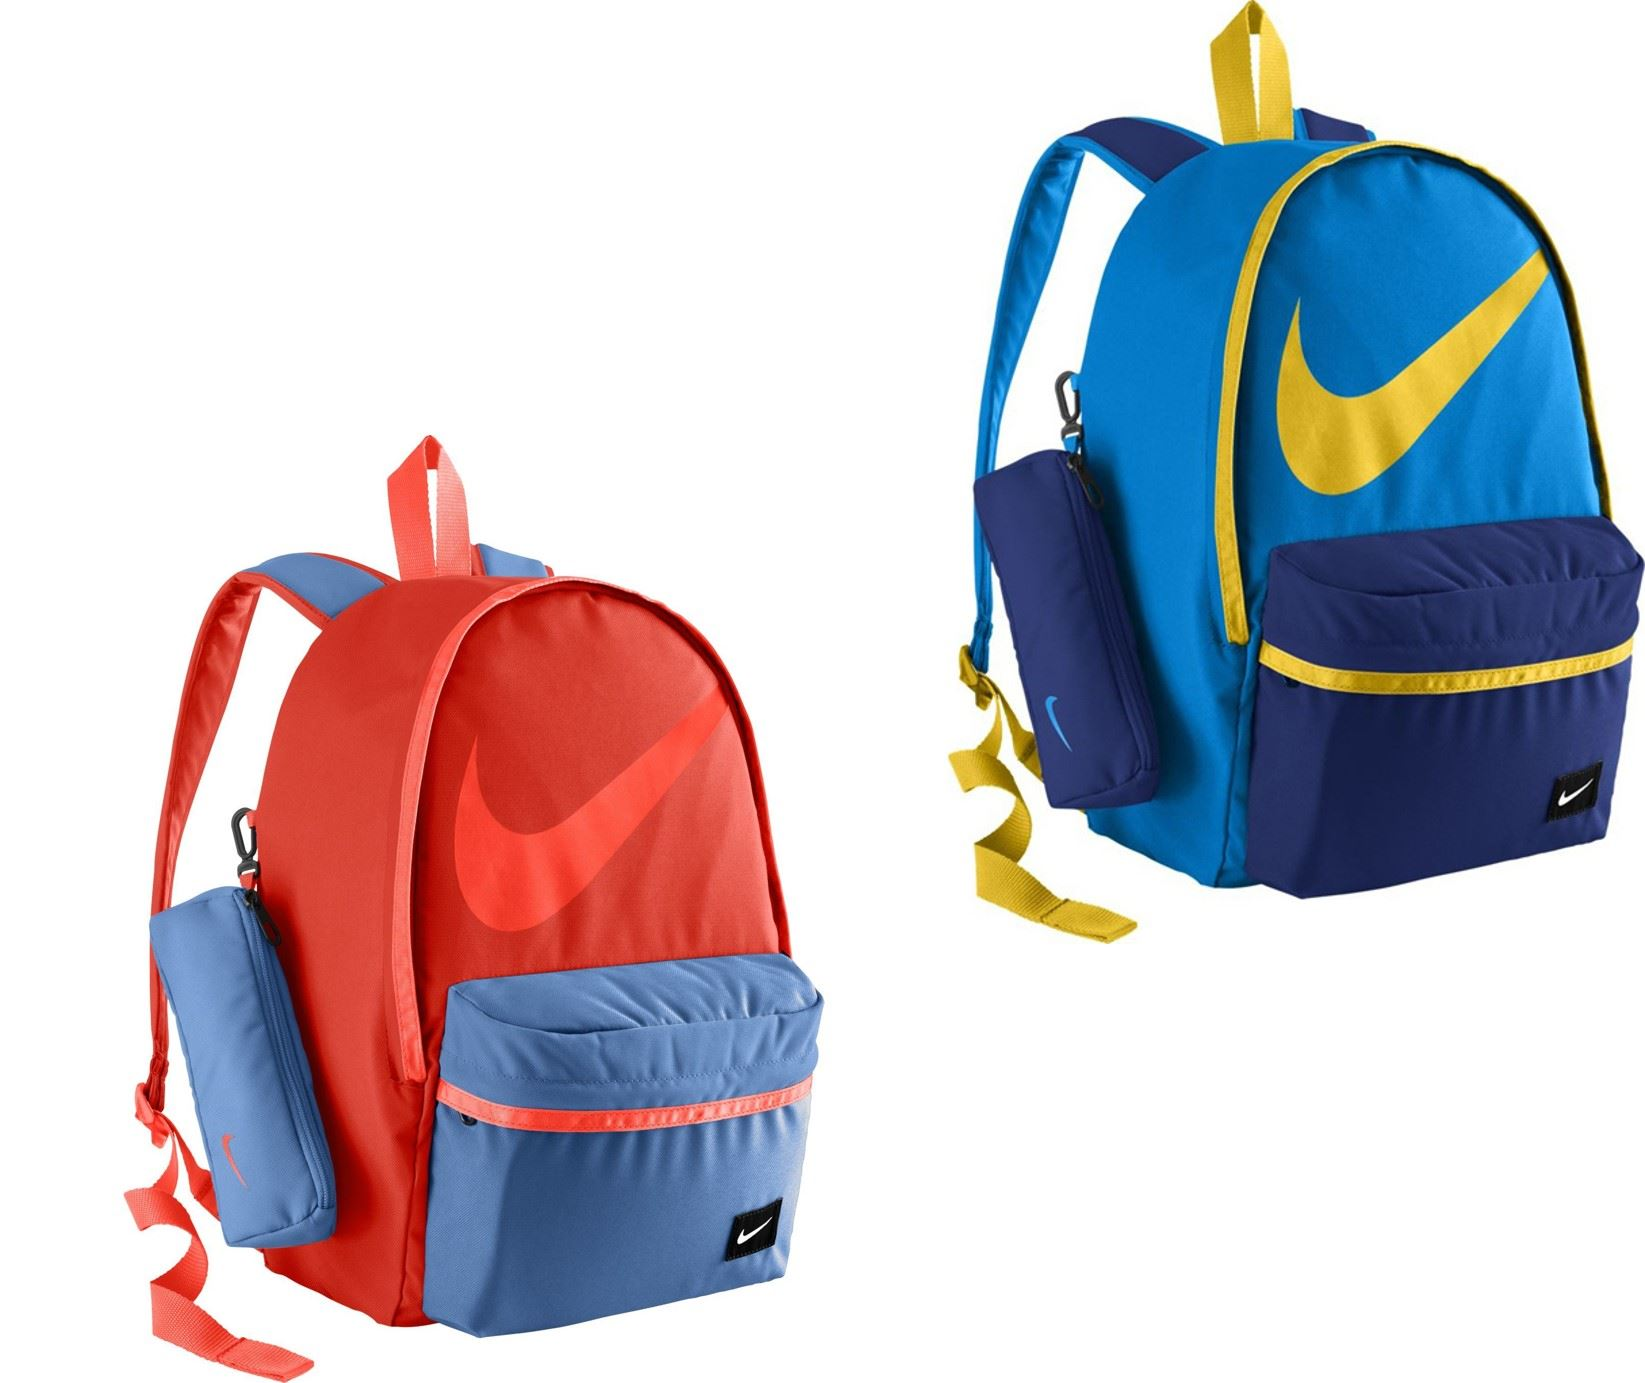 5930fc62d326 Nike Young Halfday Back to School Rucksack Backpack in Blue   Red BA4665  406 696